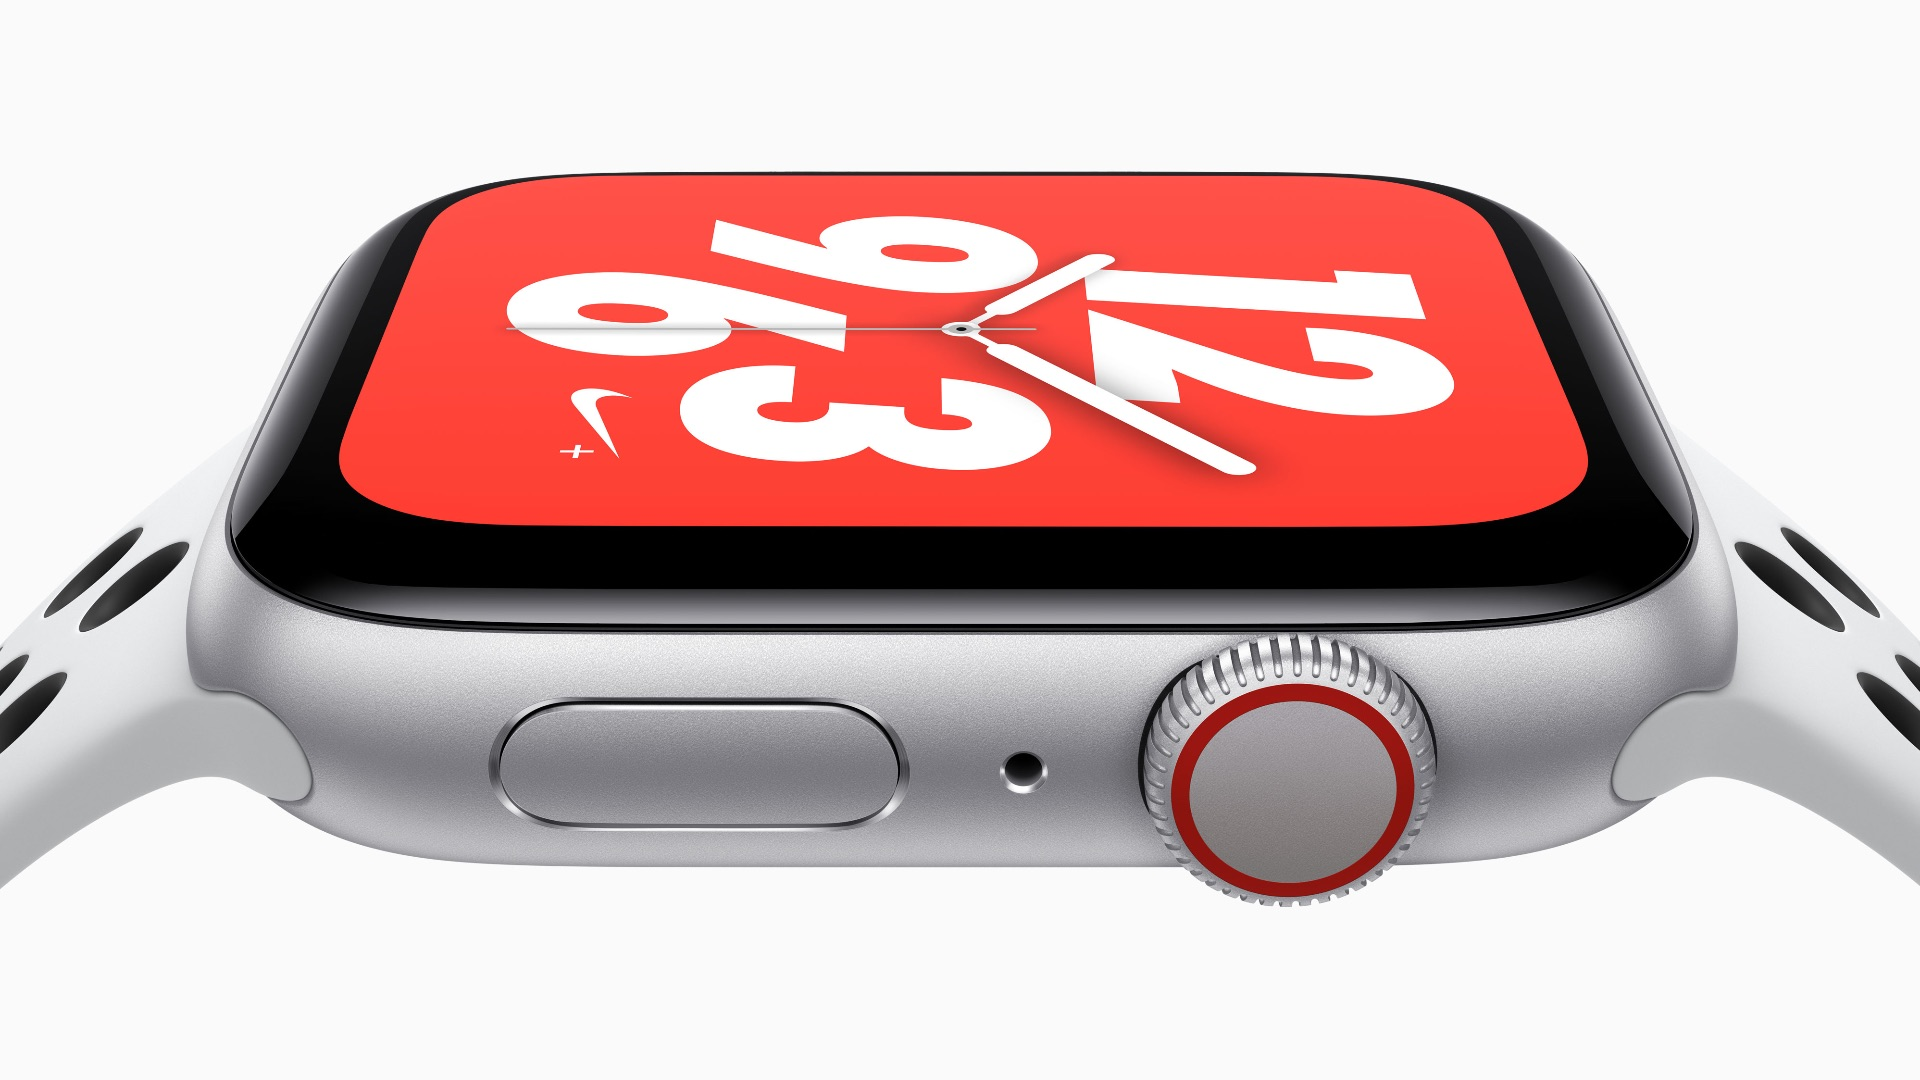 Apple Watch Nike+ hits stores tomorrow with new face and reflective band